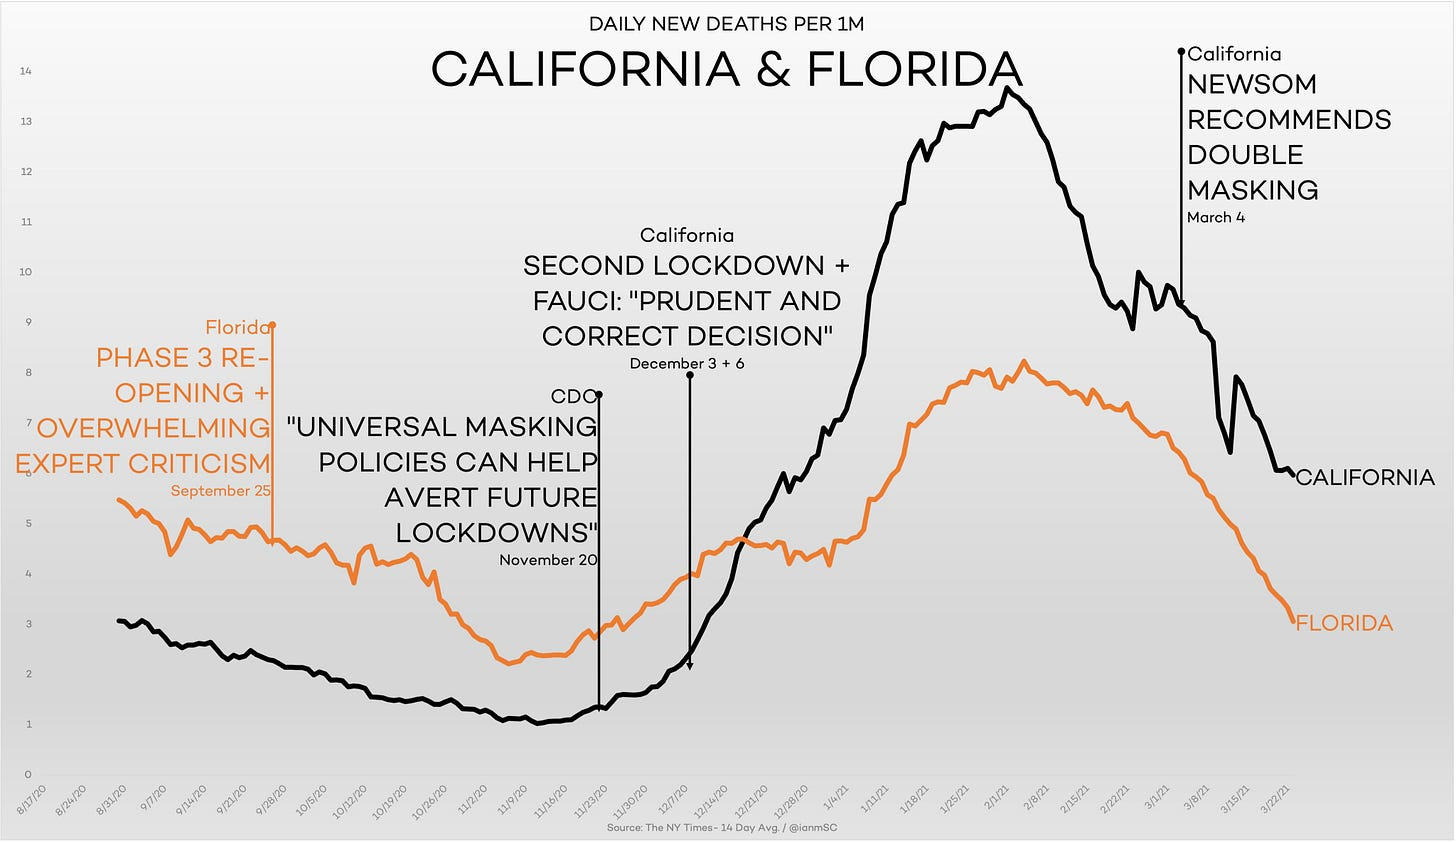 daly news deaths per 1m california and florida